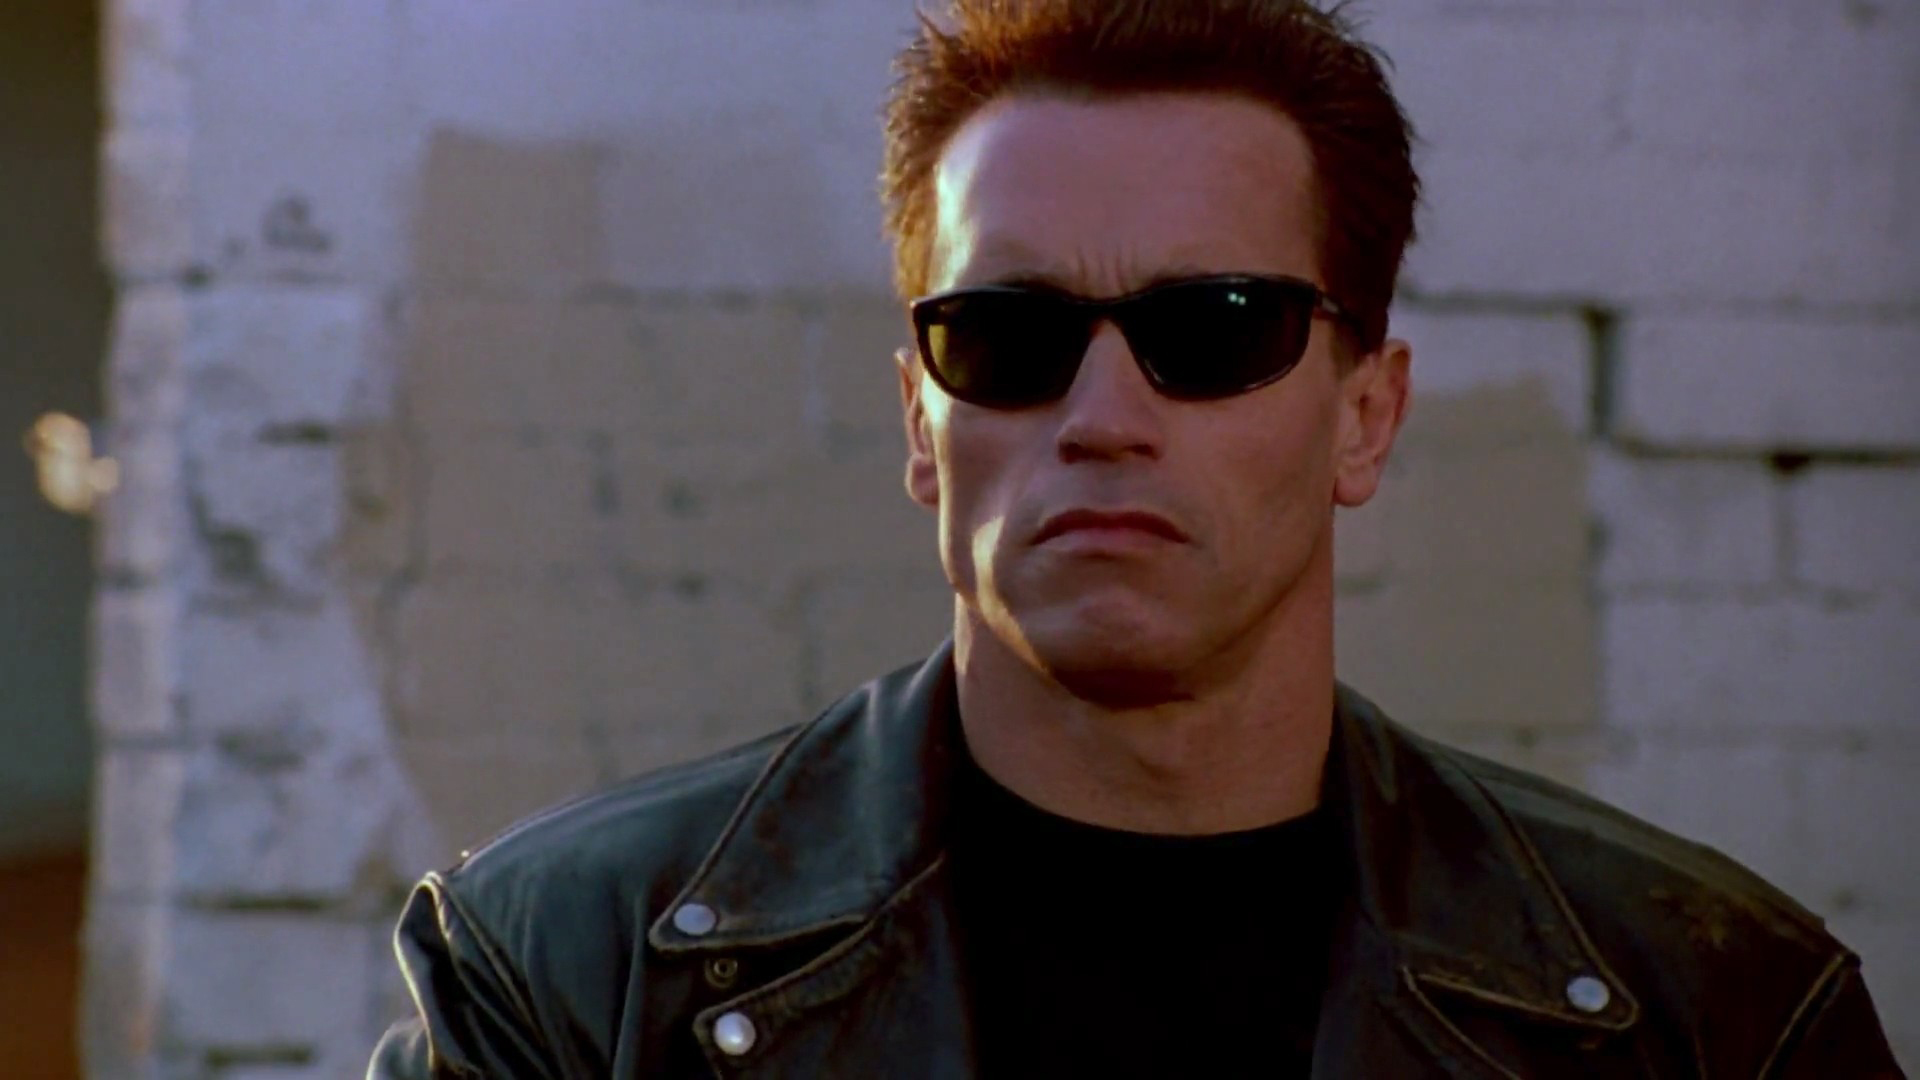 Have Arnold Schwarzenegger guide you with the popular Waze app